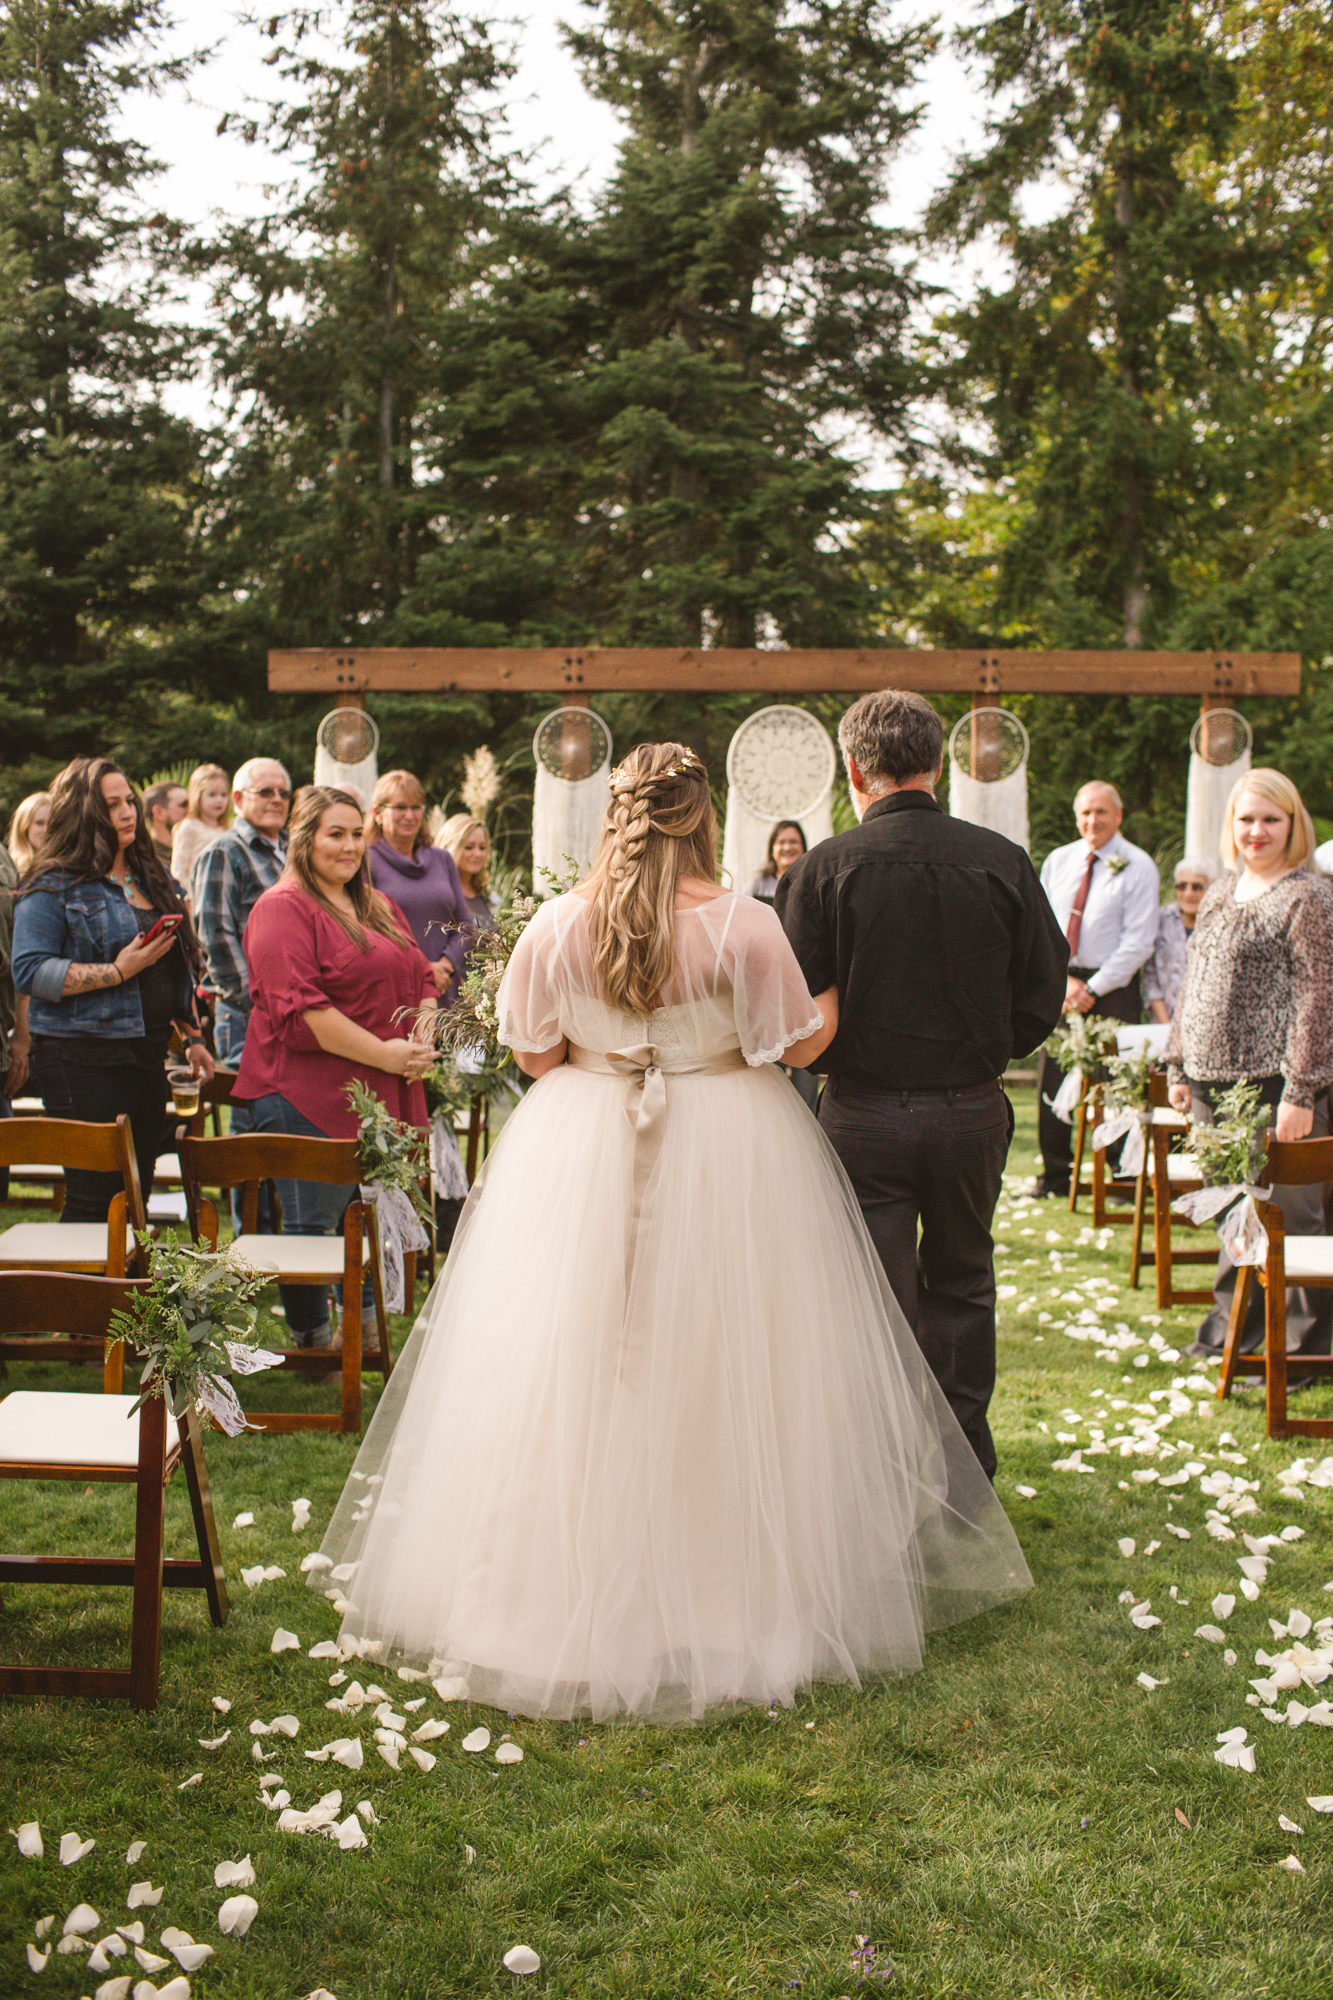 Brandi & Chad's Wedding-62.jpg